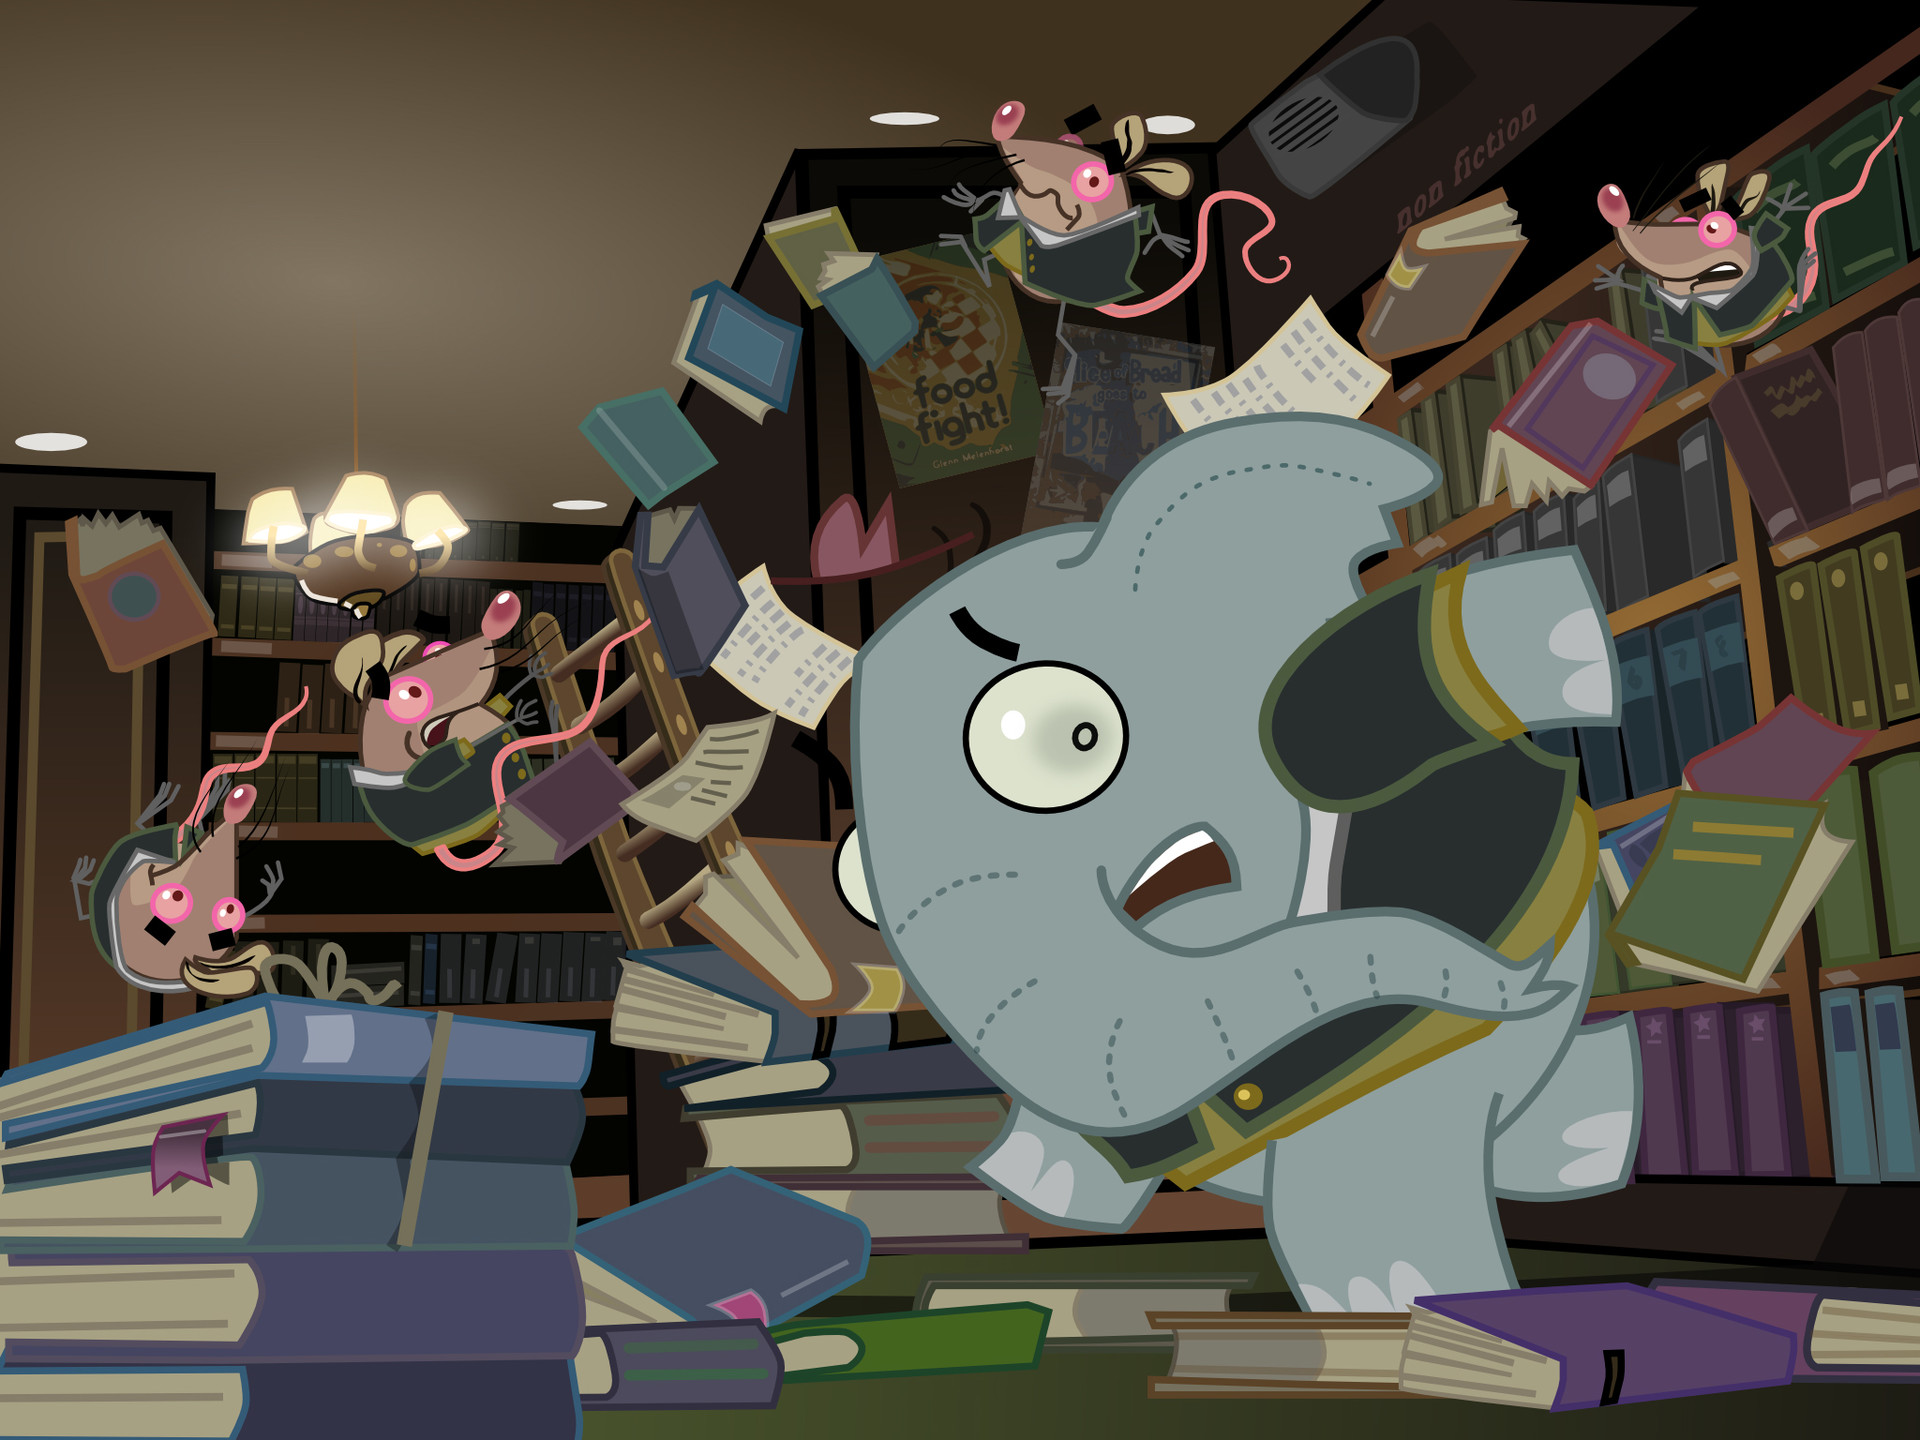 Mr. Elephant & Mr. Mouse. Library